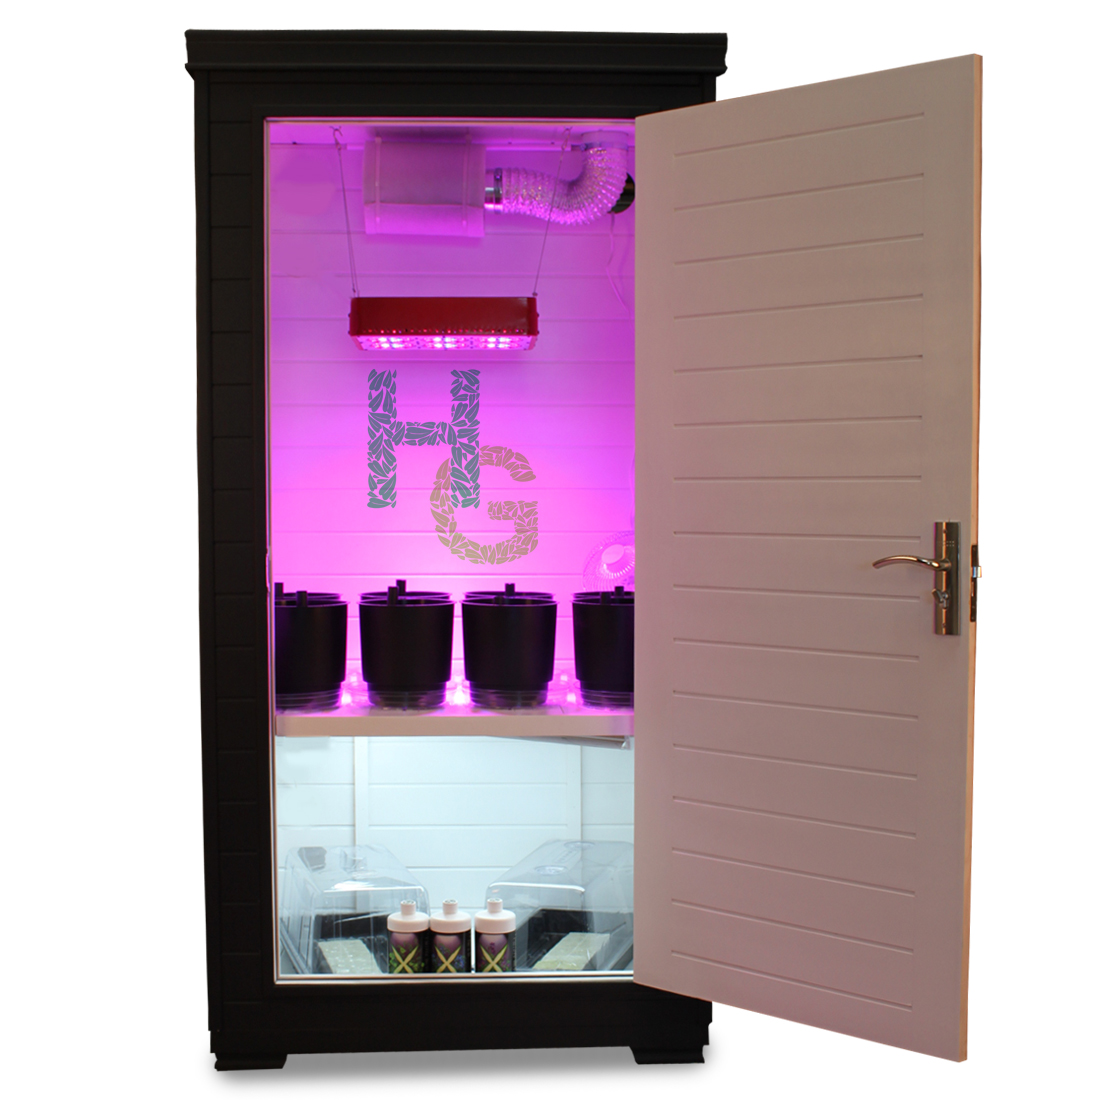 LED Grow Boxes From Hydroponics Group